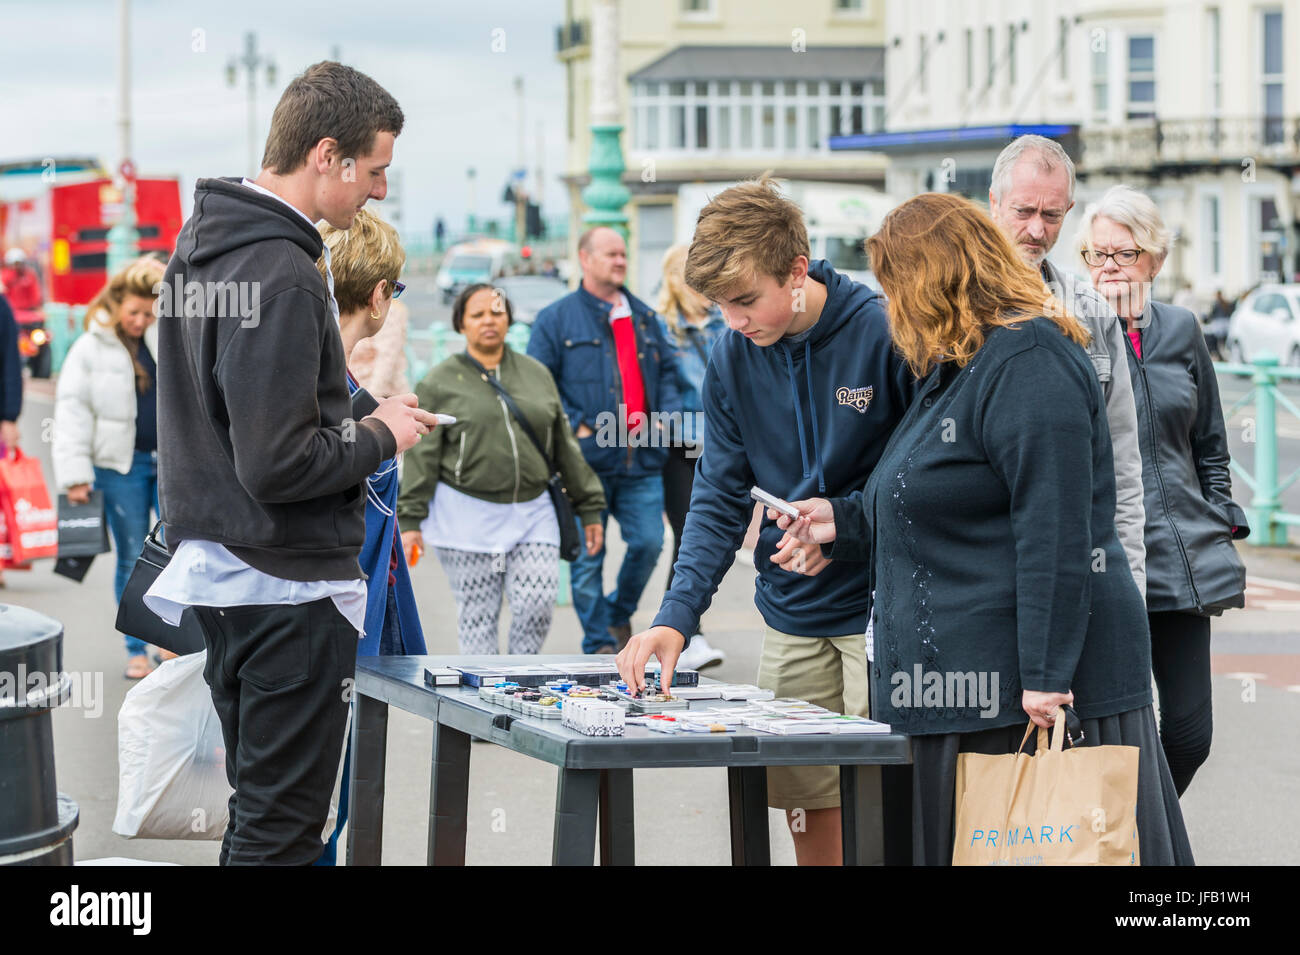 Street trader. Man with a stool in the street selling fidget spinners in the UK. - Stock Image